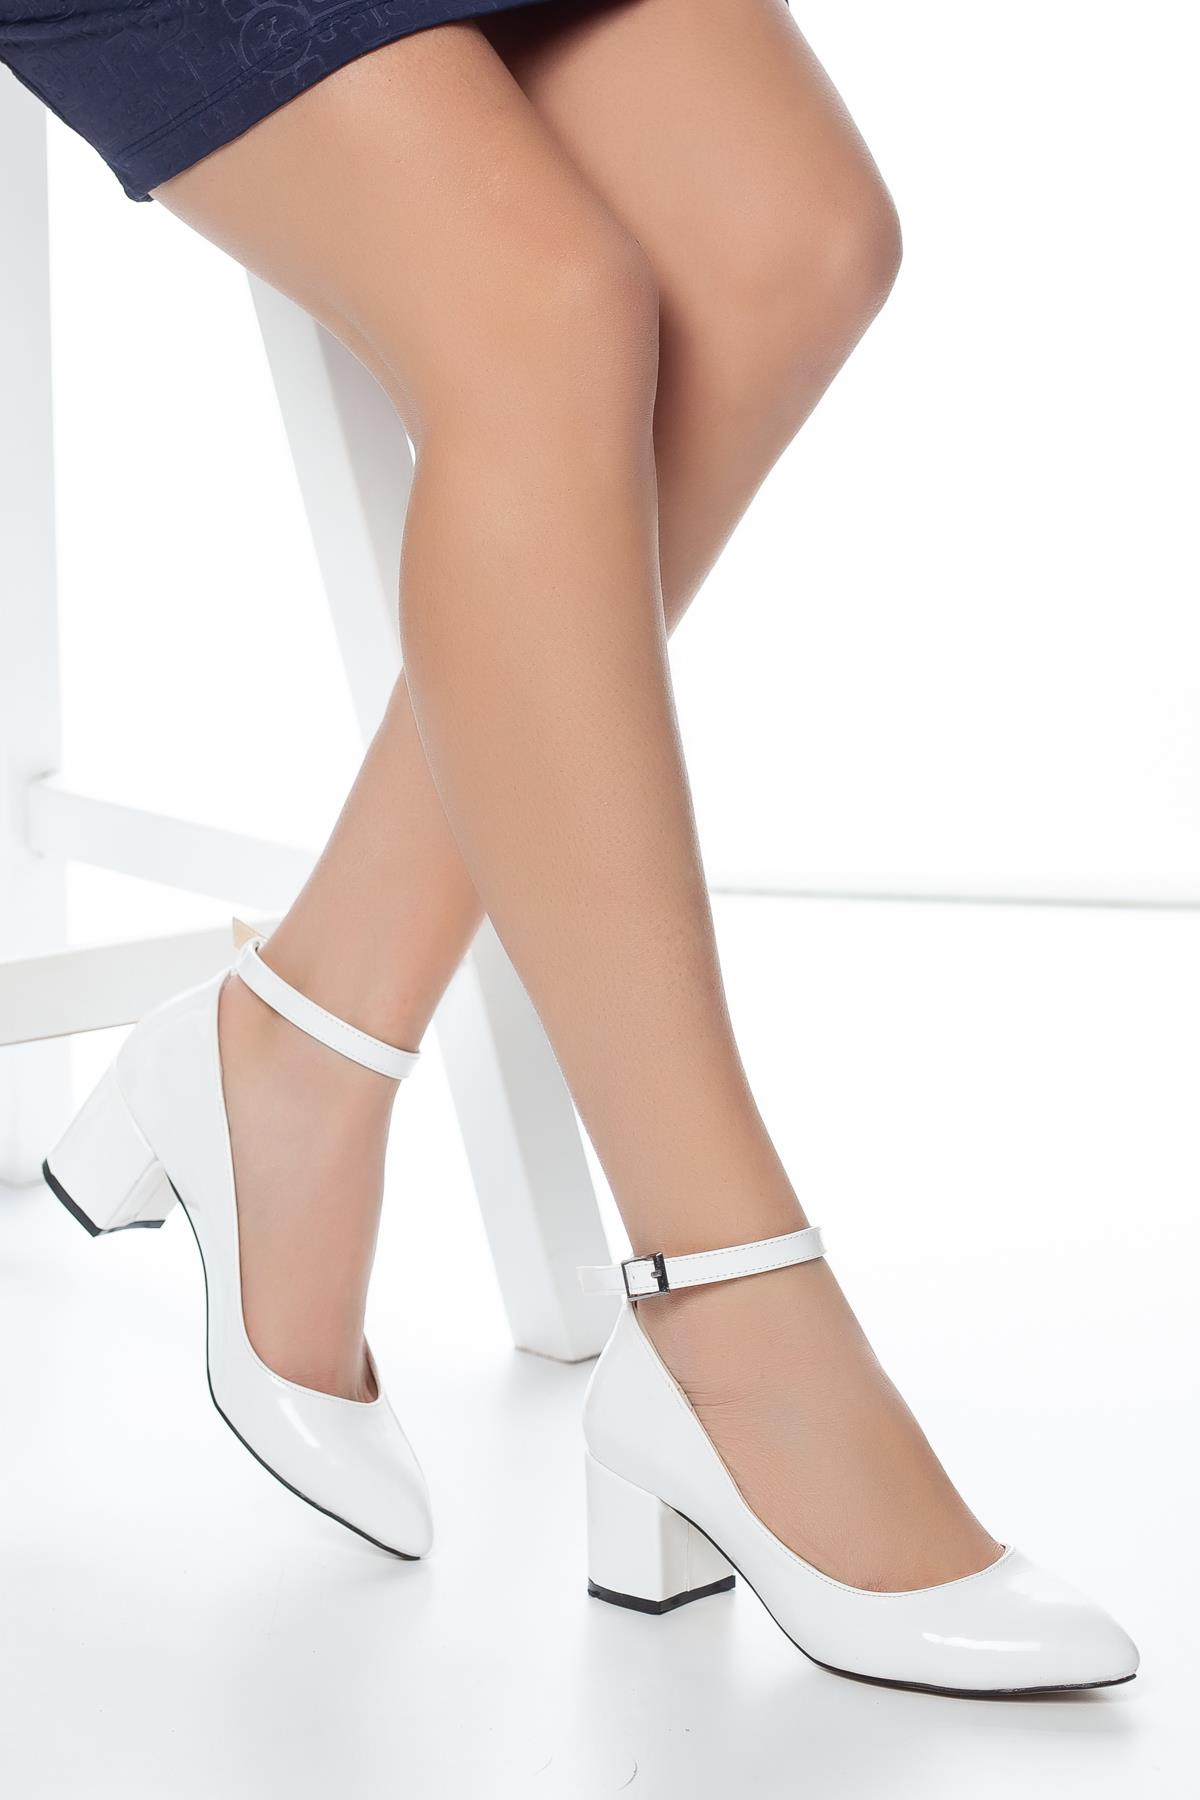 Women's Ankle Strap White Heeled Shoes